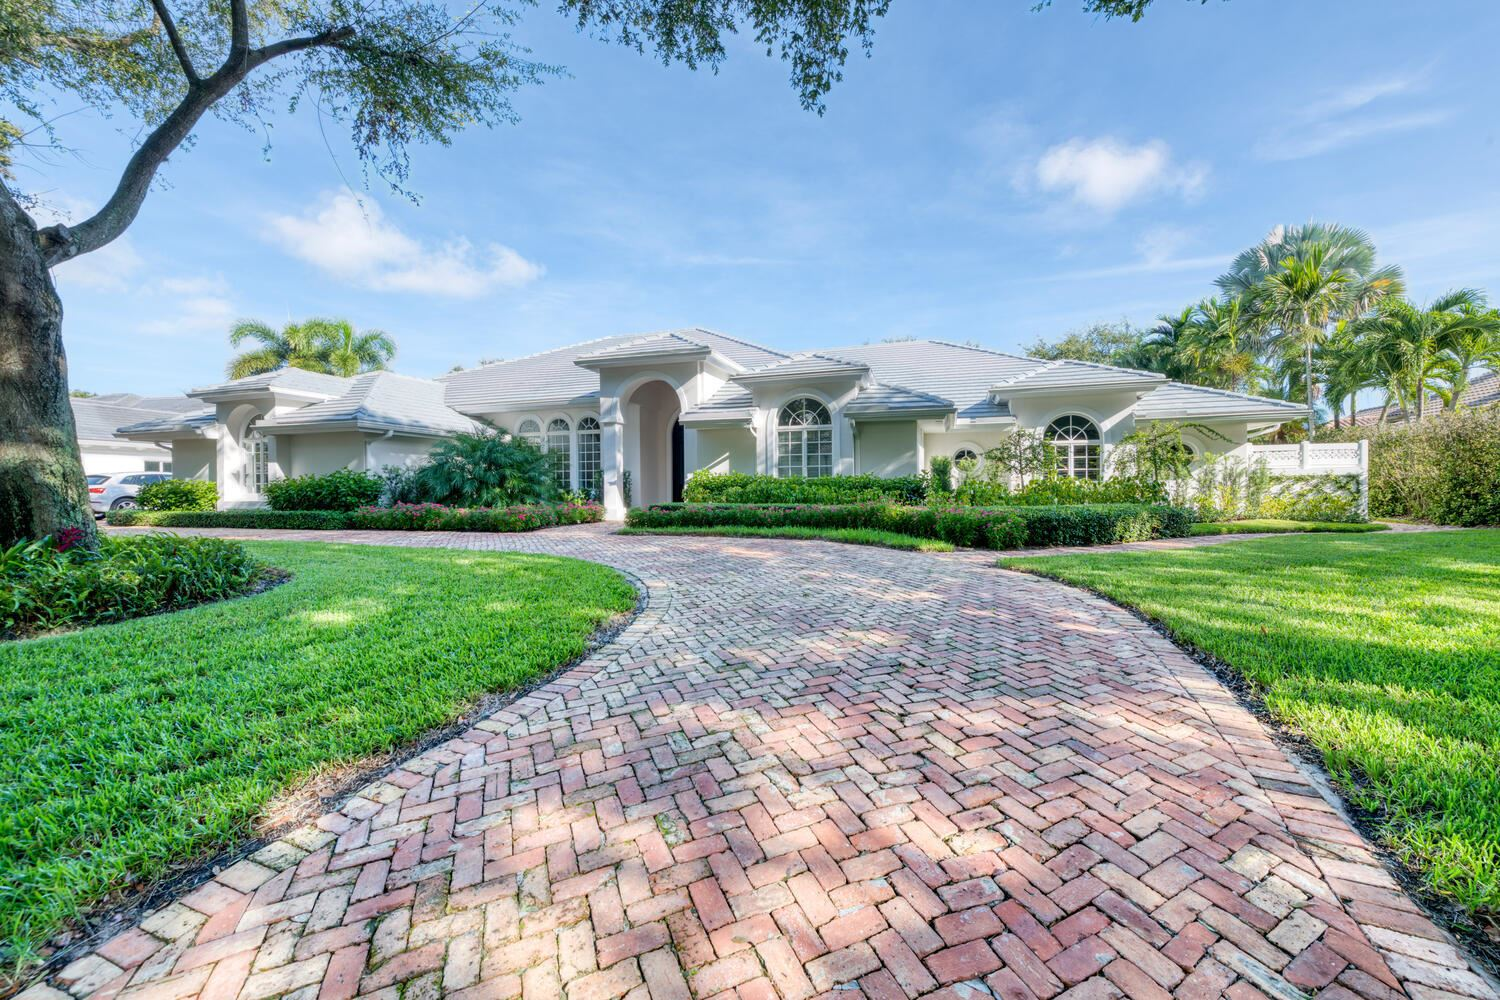 Photo of 150 Commodore Drive, Jupiter, FL 33477 (MLS # RX-10633135)